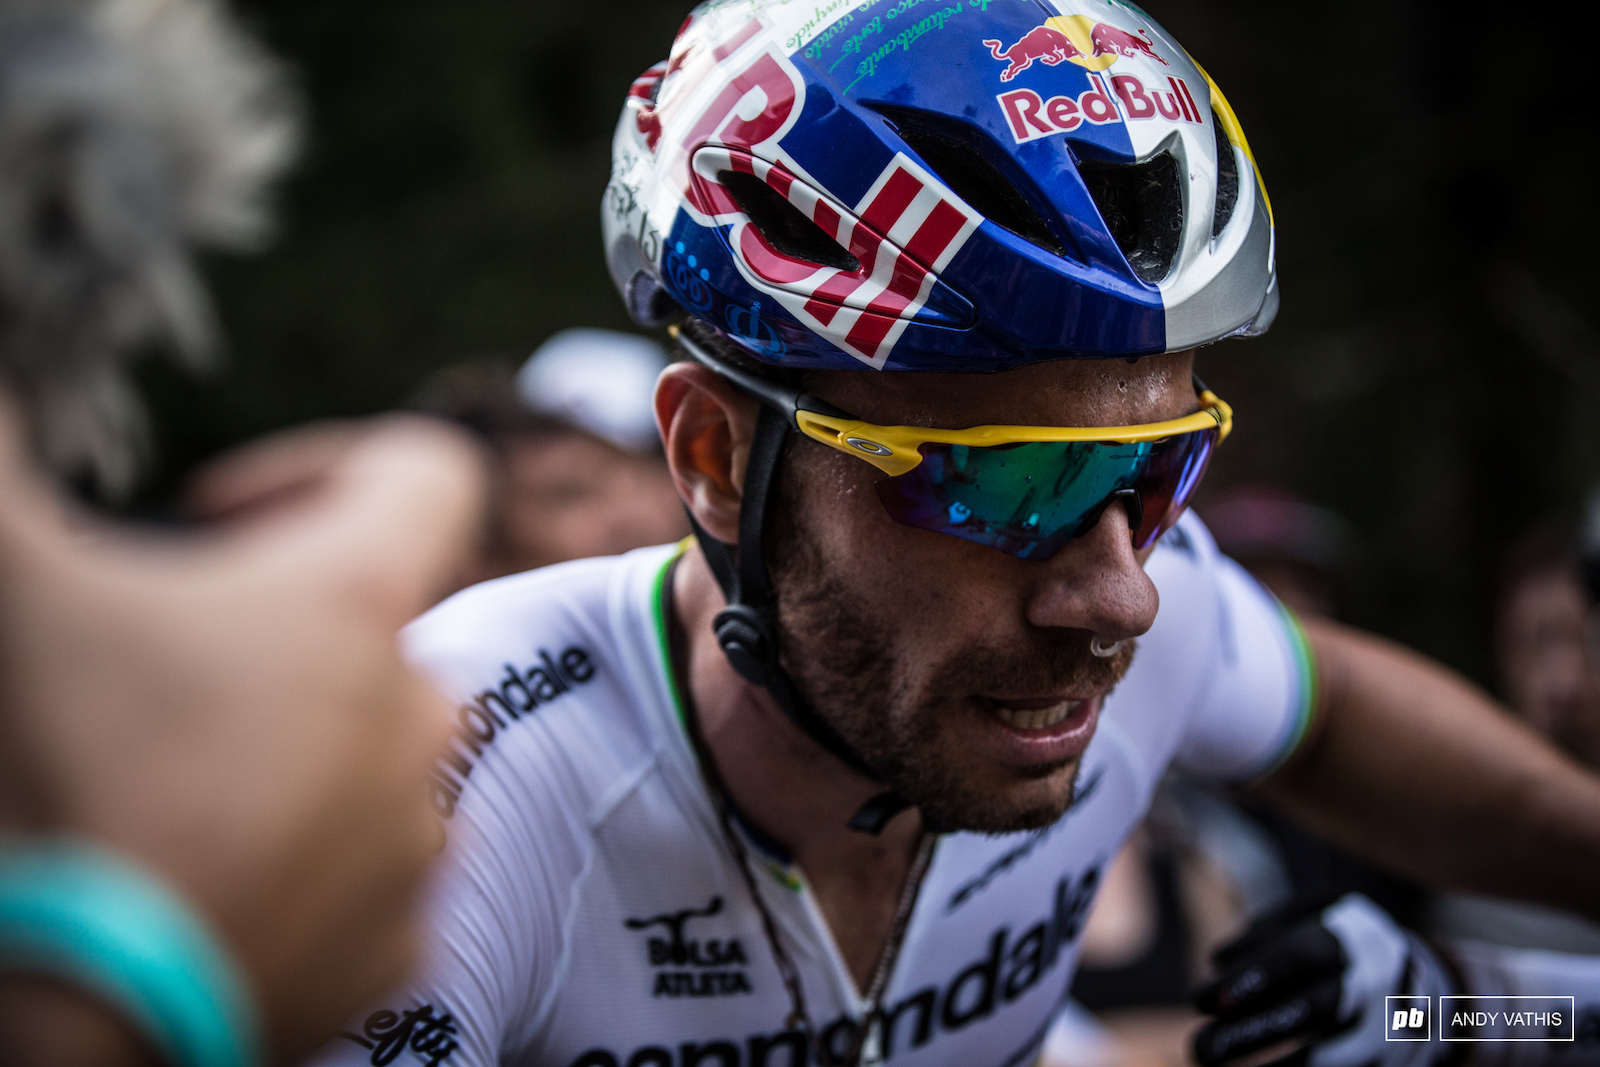 Avancini gassed still trying to figure out how to defeat van der Poel.